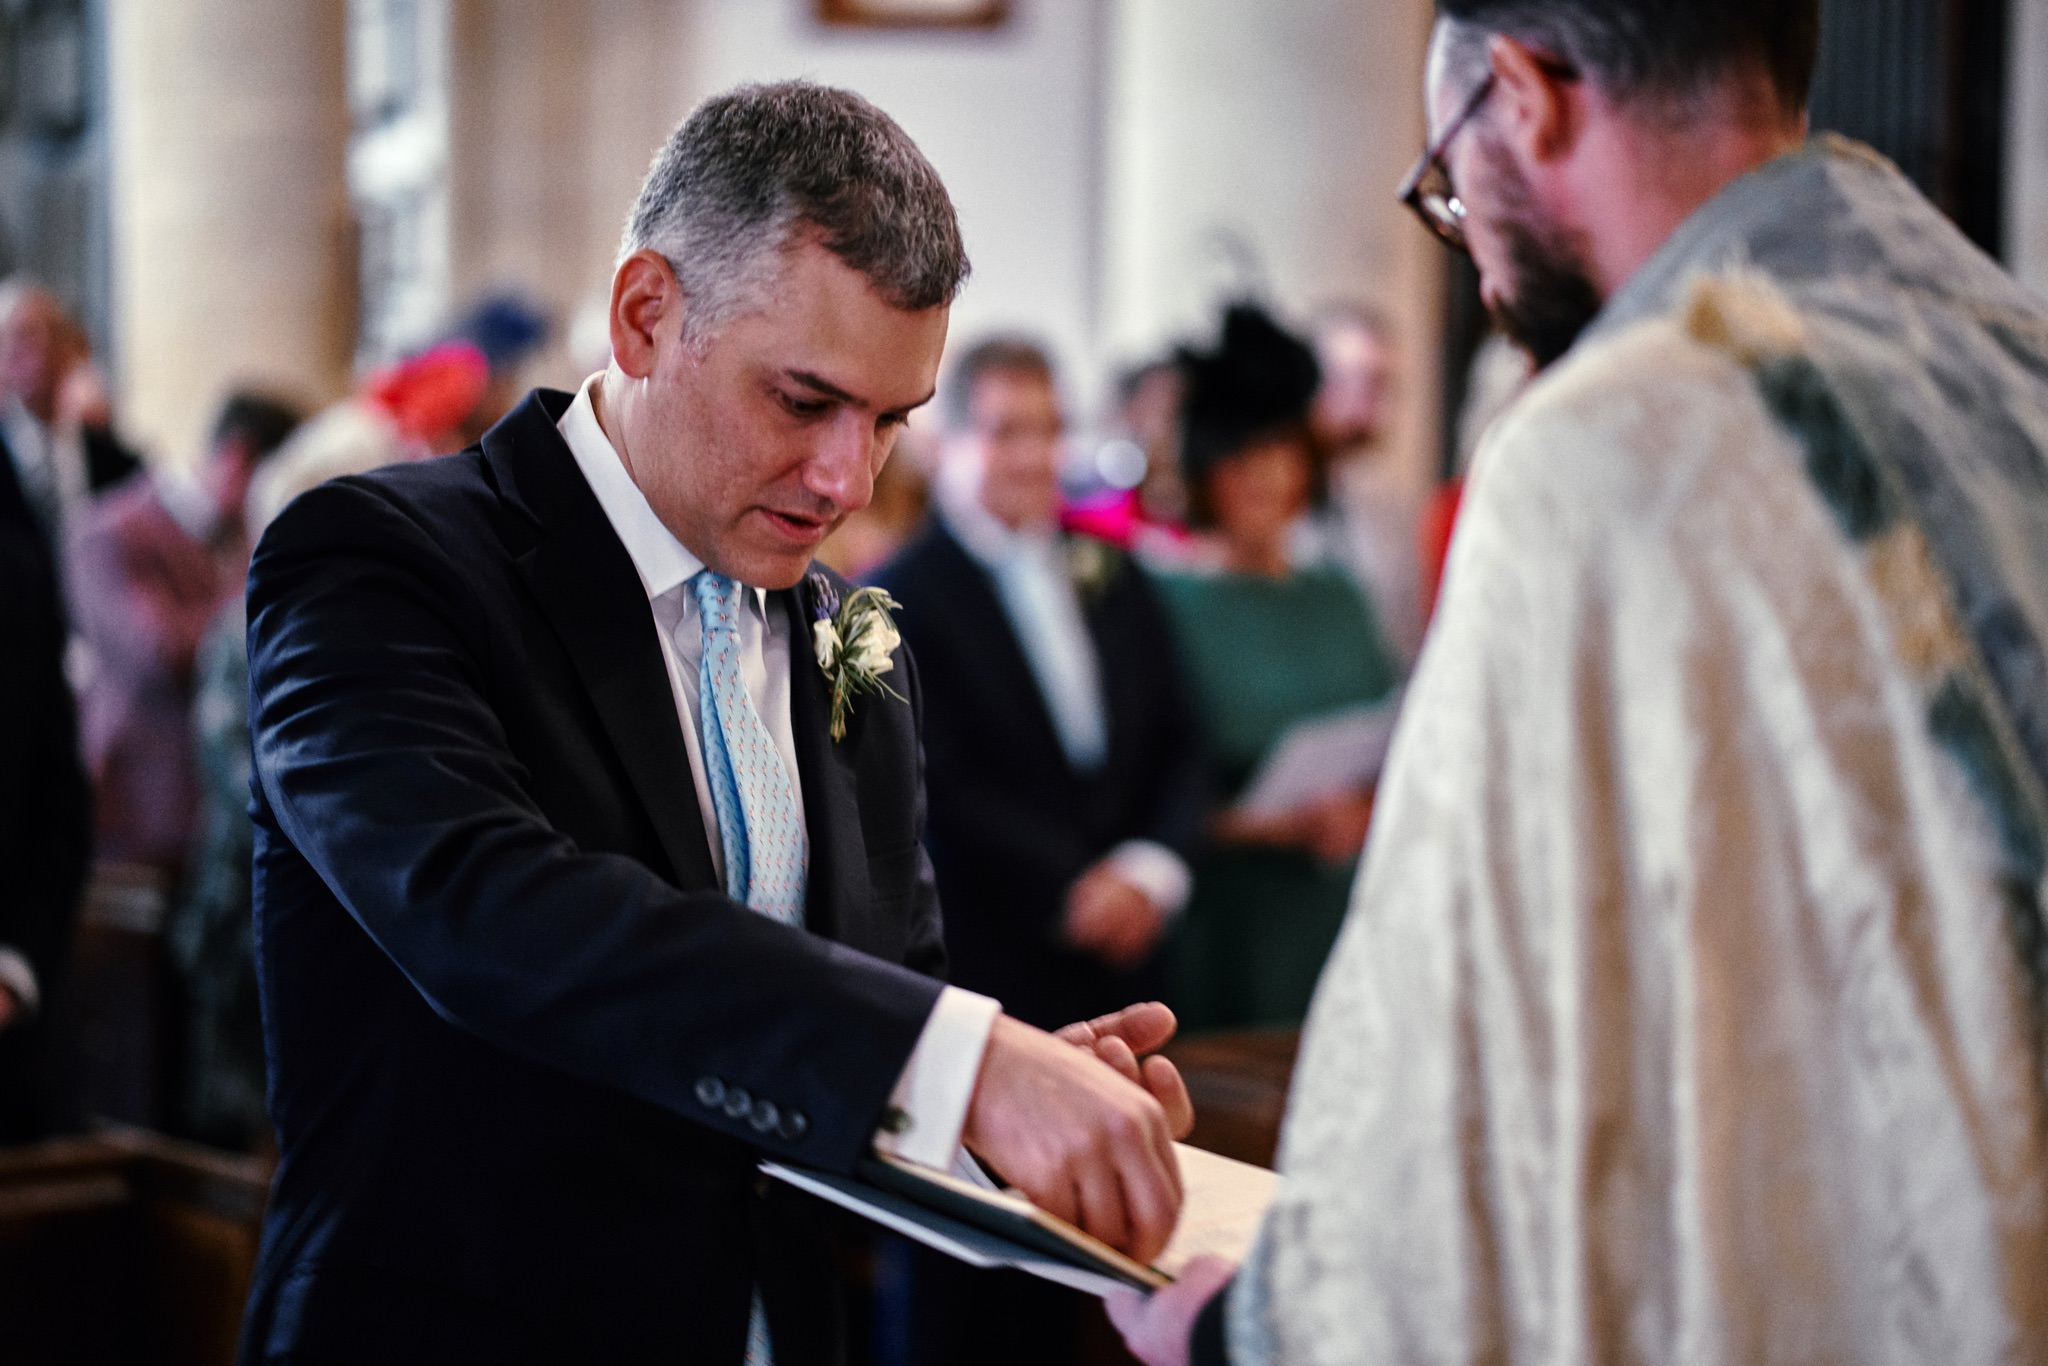 Best man delivers rings during wedding service at St Mary's Church, Henley-on-Thames